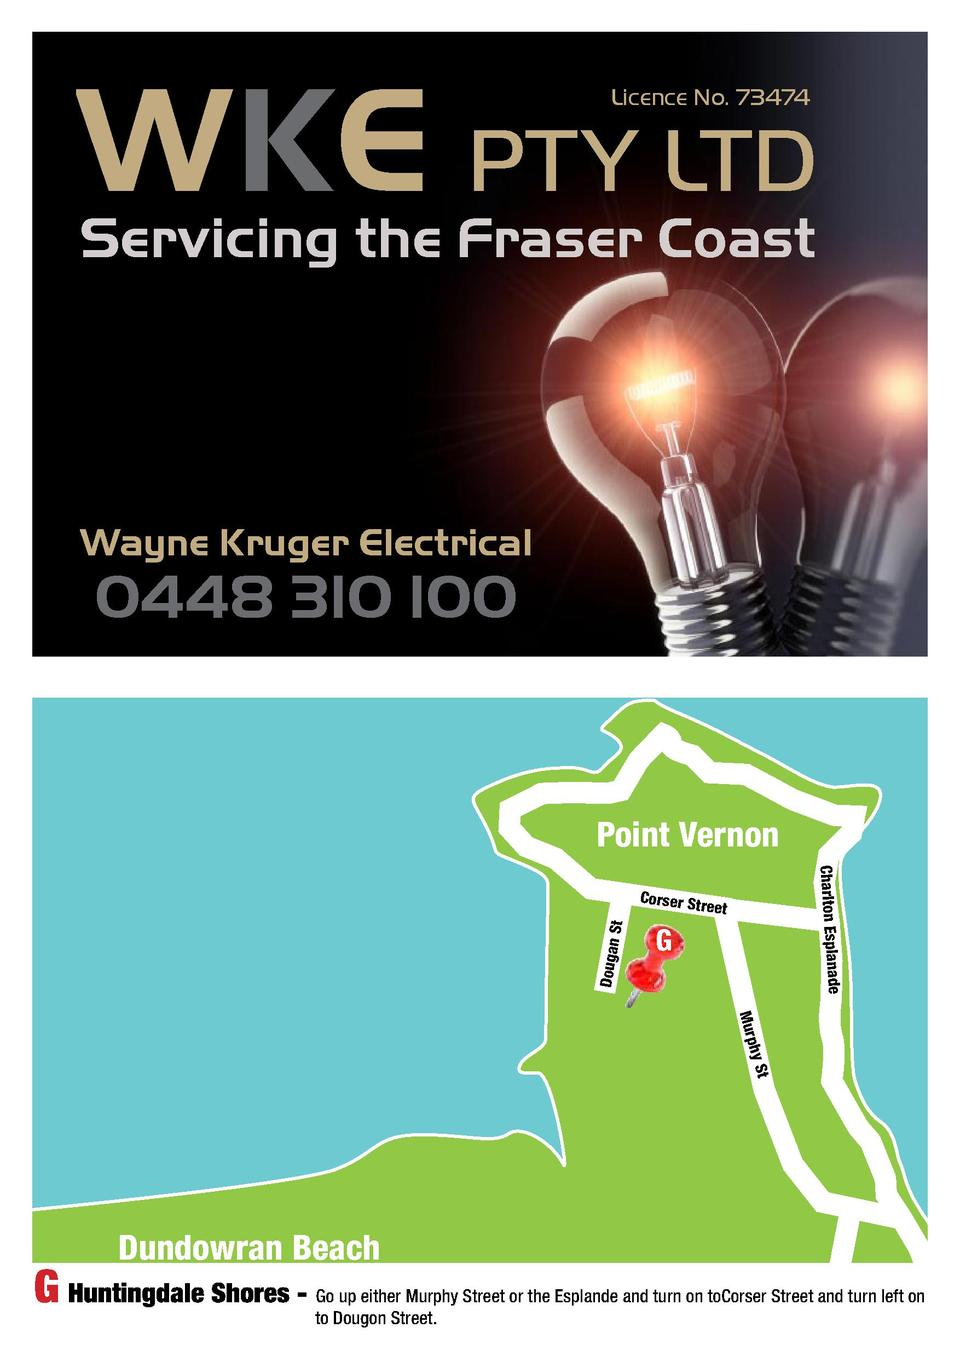 WKE PTY LTD Licence No. 73474  Servicing the Fraser Coast  Wayne Kruger Electrical  0448 310 100       Point Vernon Charlt...